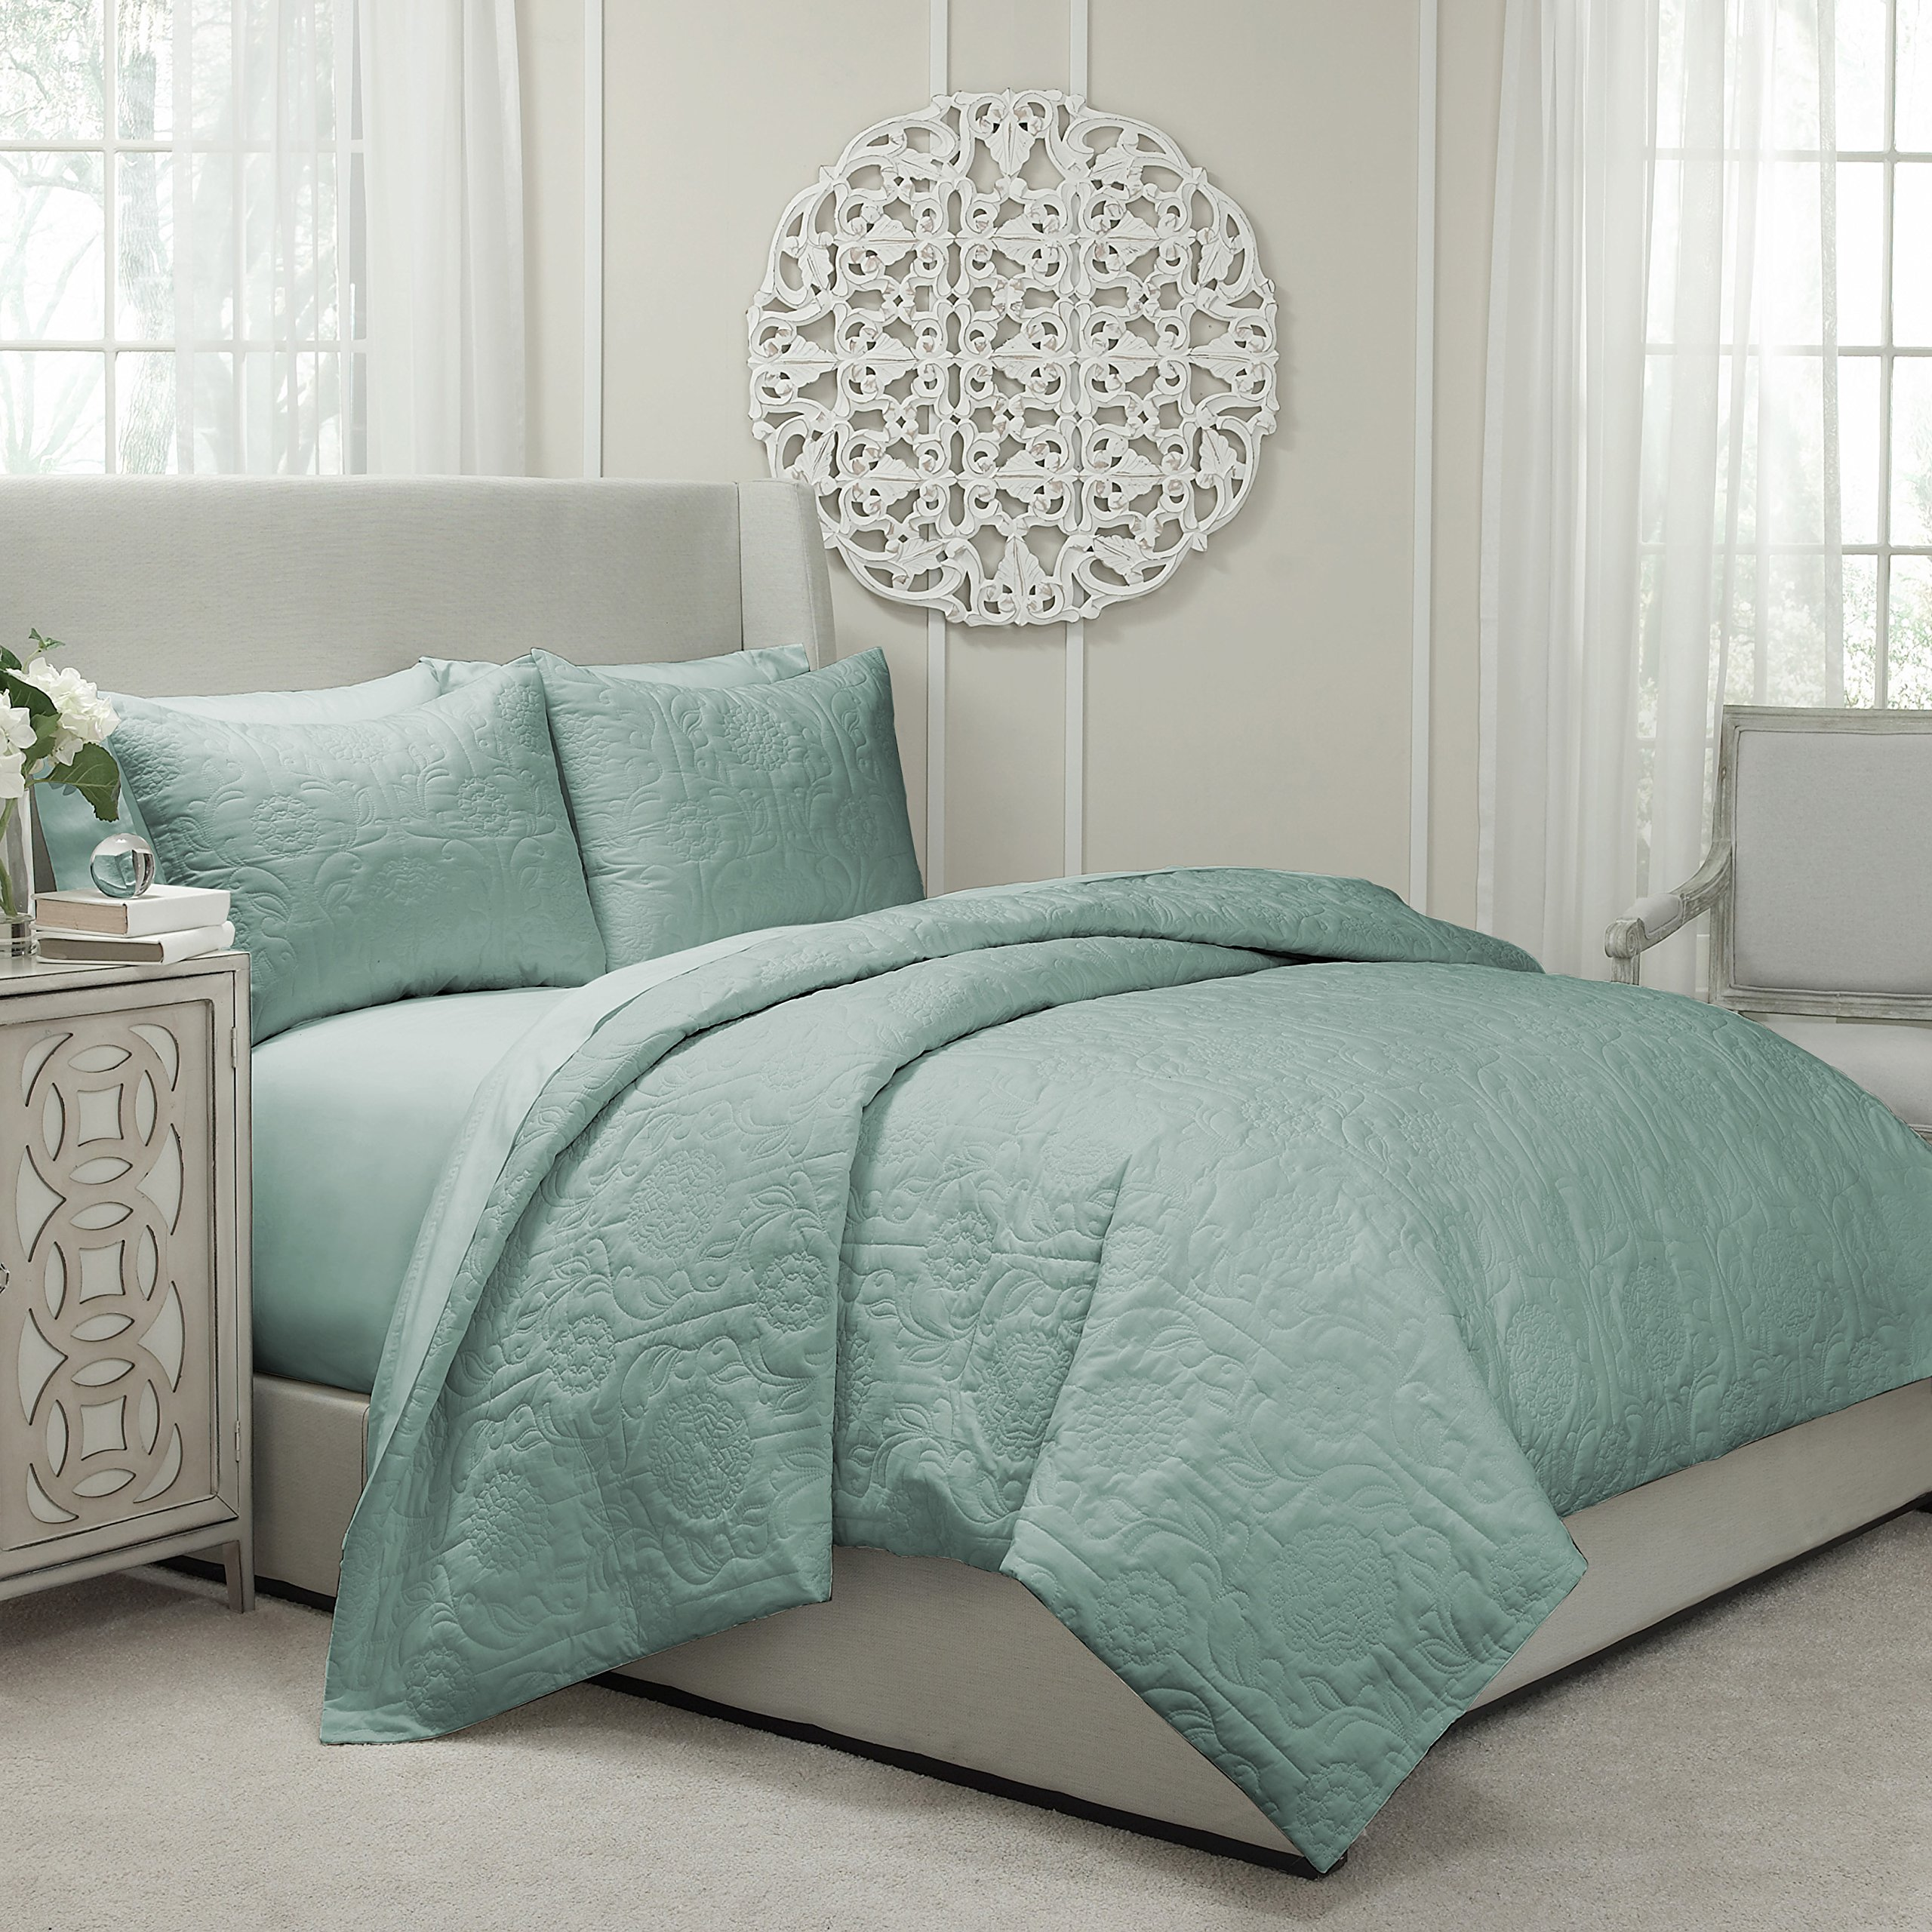 Blissliving Home Vue Barcelona Quilted Coverlet and Duvet Ensemble, Spa, Queen